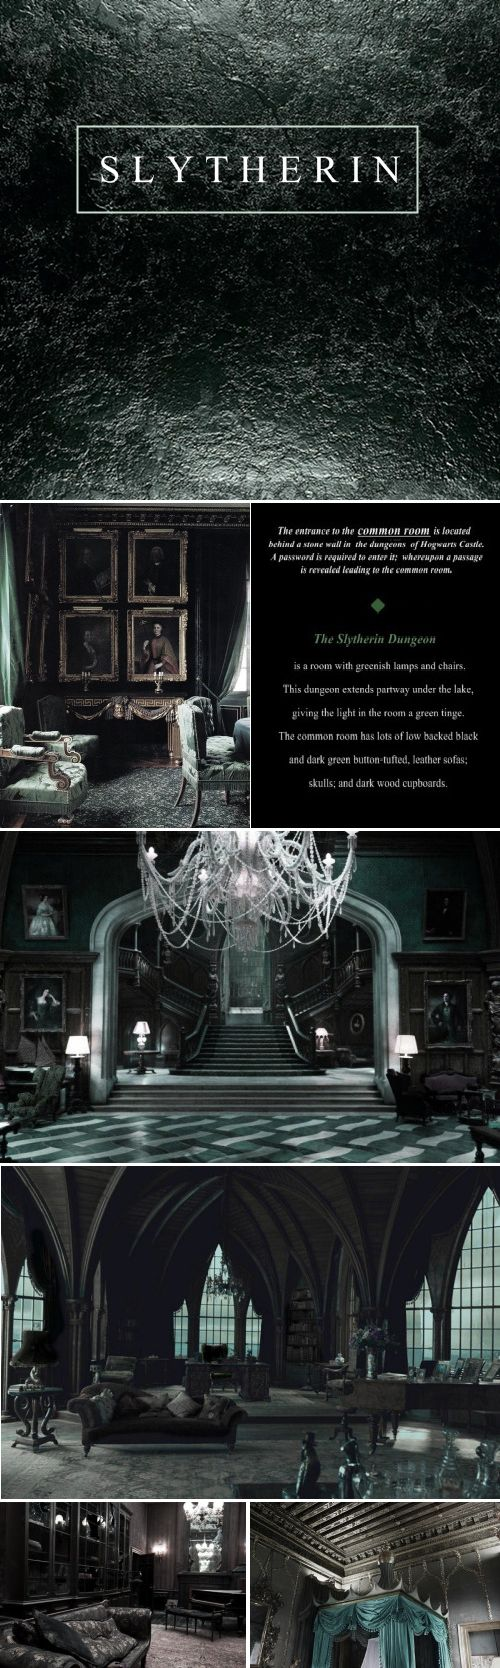 Considering basing my summer project on the Slytherin Common room (as that's my house):